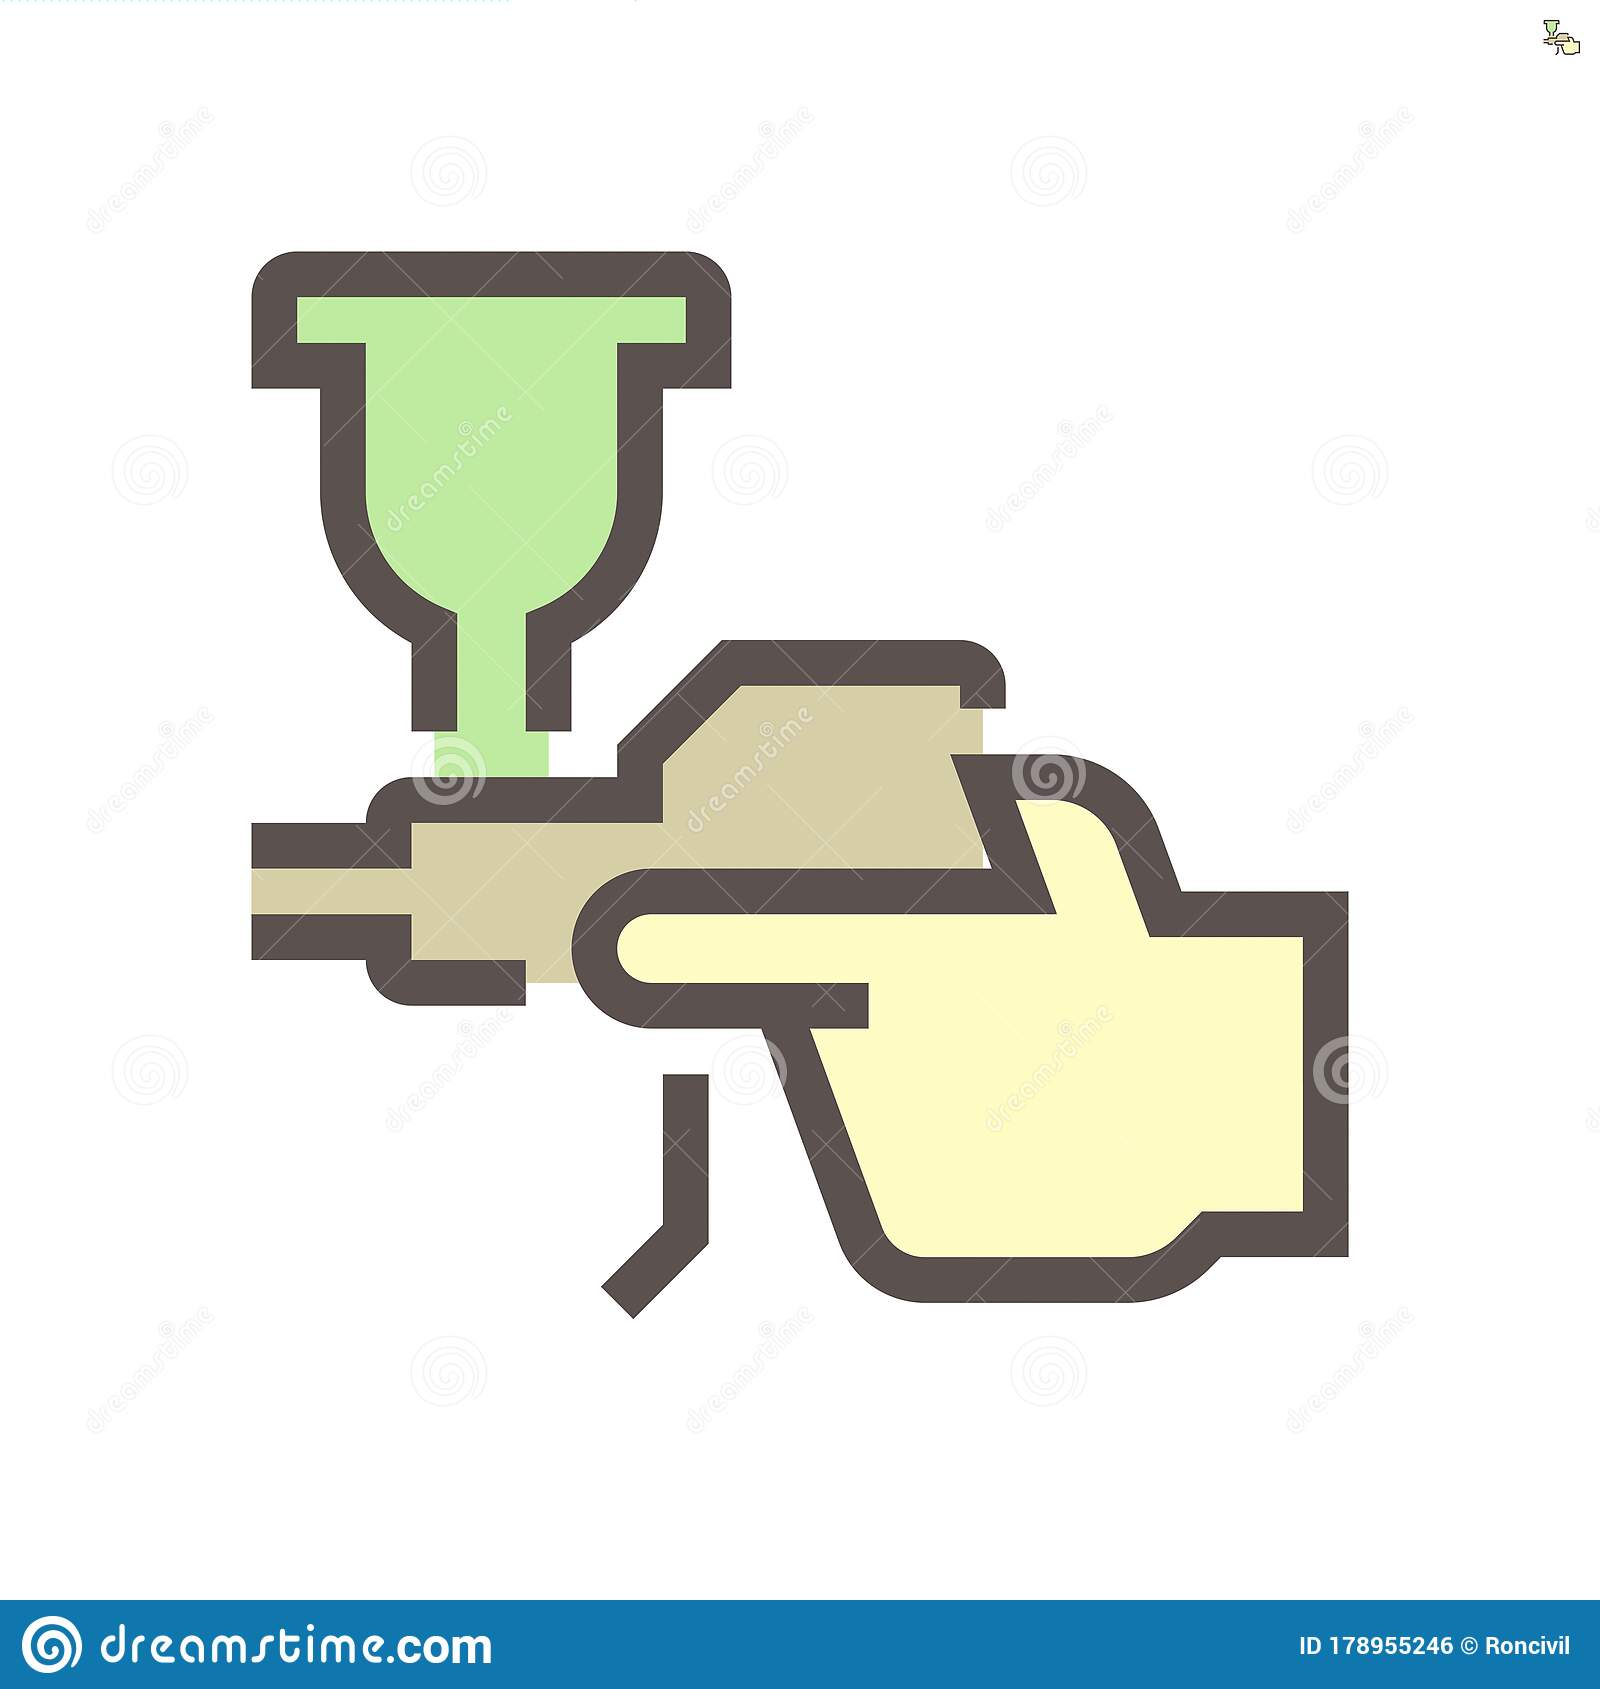 Car Paint Nozzle Tool For Car Painting Work Vector Icon Stock Vector Illustration Of Color Compressor 178955246